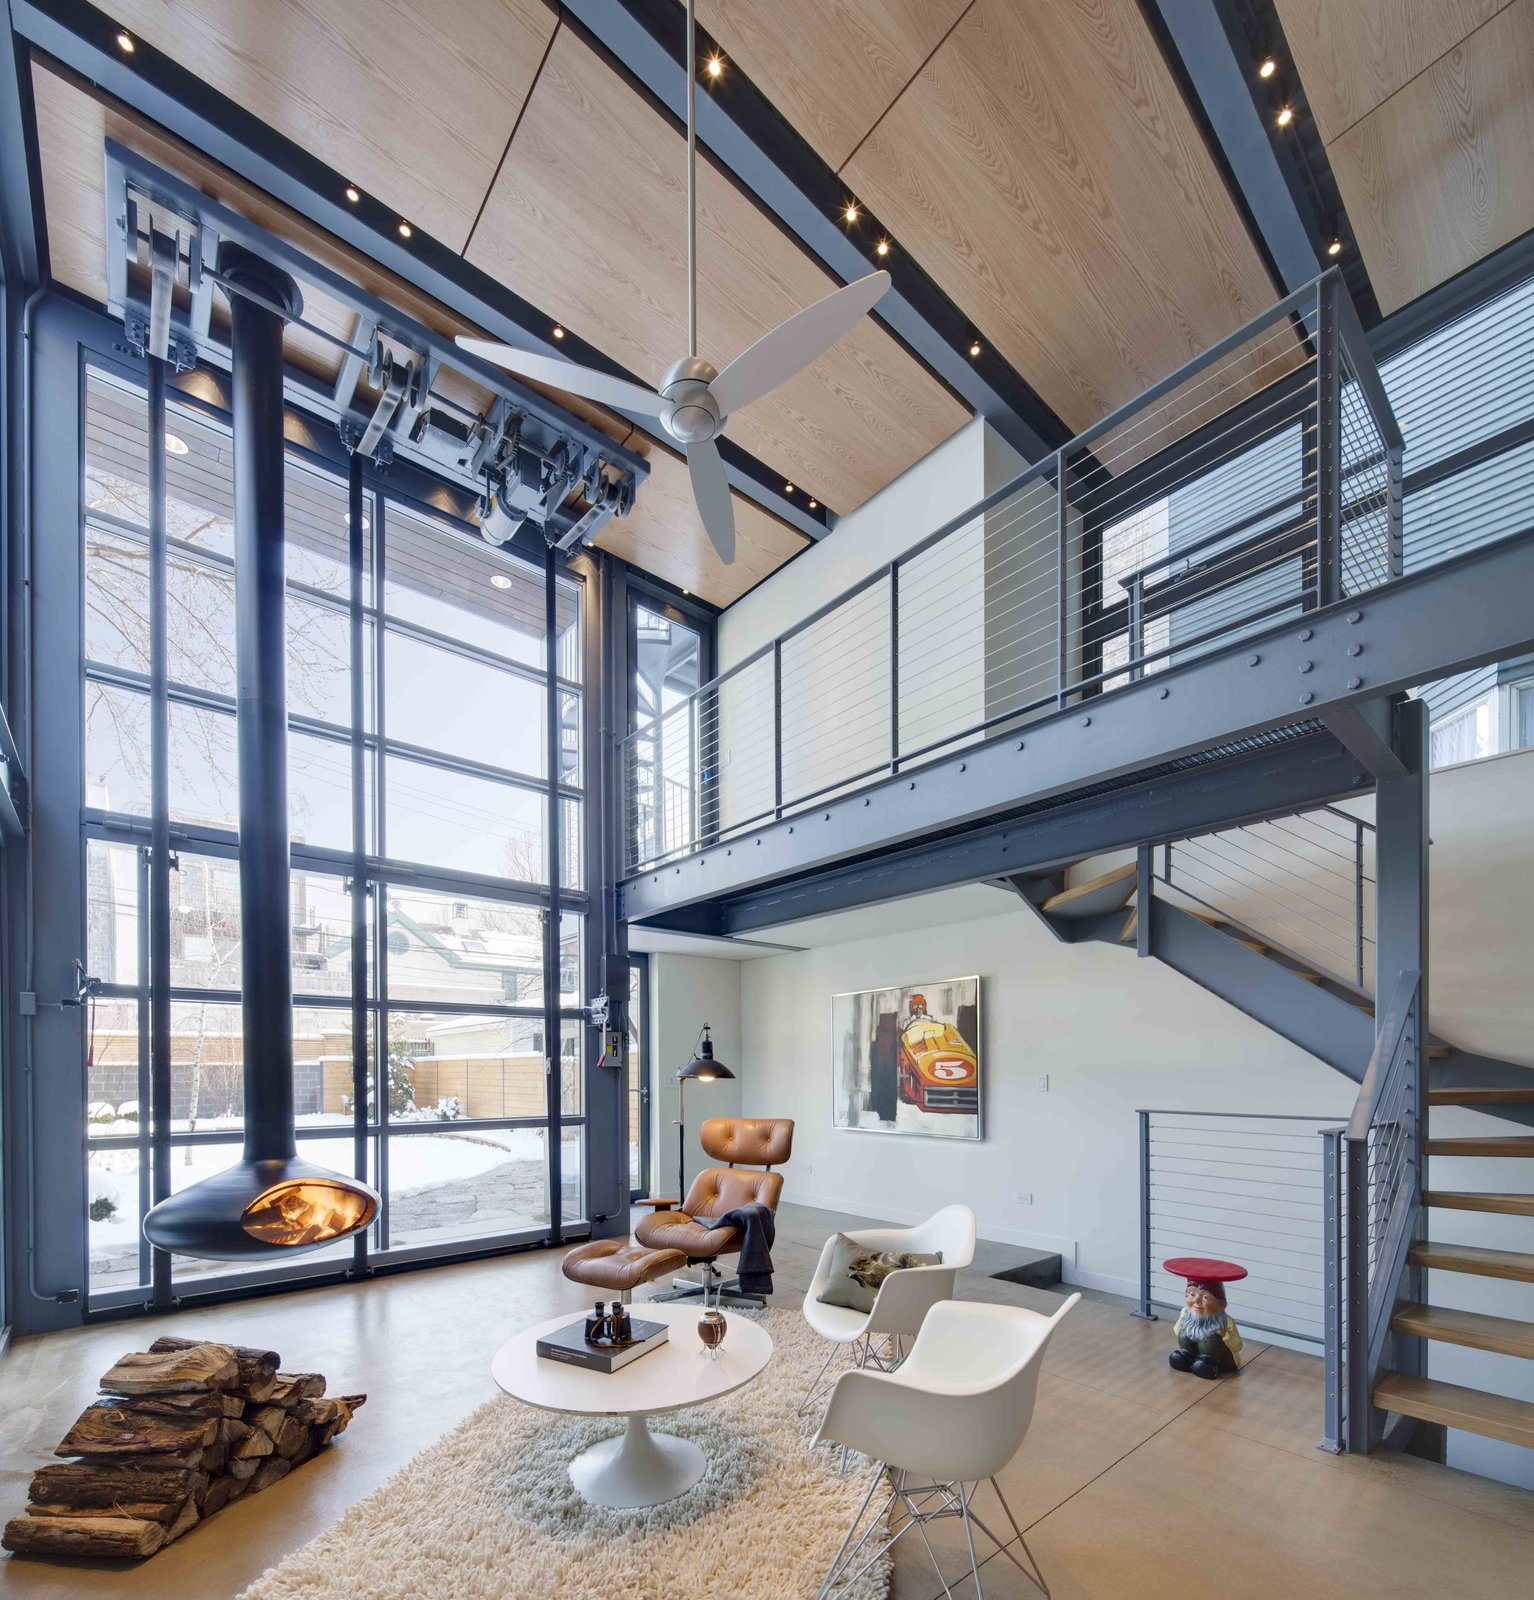 Chair, Coffee Tables, Ceiling Lighting, Concrete Floor, Hanging Fireplace, Metal, Staircase, Wood Tread, and Cable Railing The interior living space is warmed by wood panels above and a hanging fire place.  The large glass hangar provides direct views and connection to the exterior elements.  Living room from A Steel-and-Glass Addition With a Giant Hangar Door Maximizes Indoor/Outdoor Living